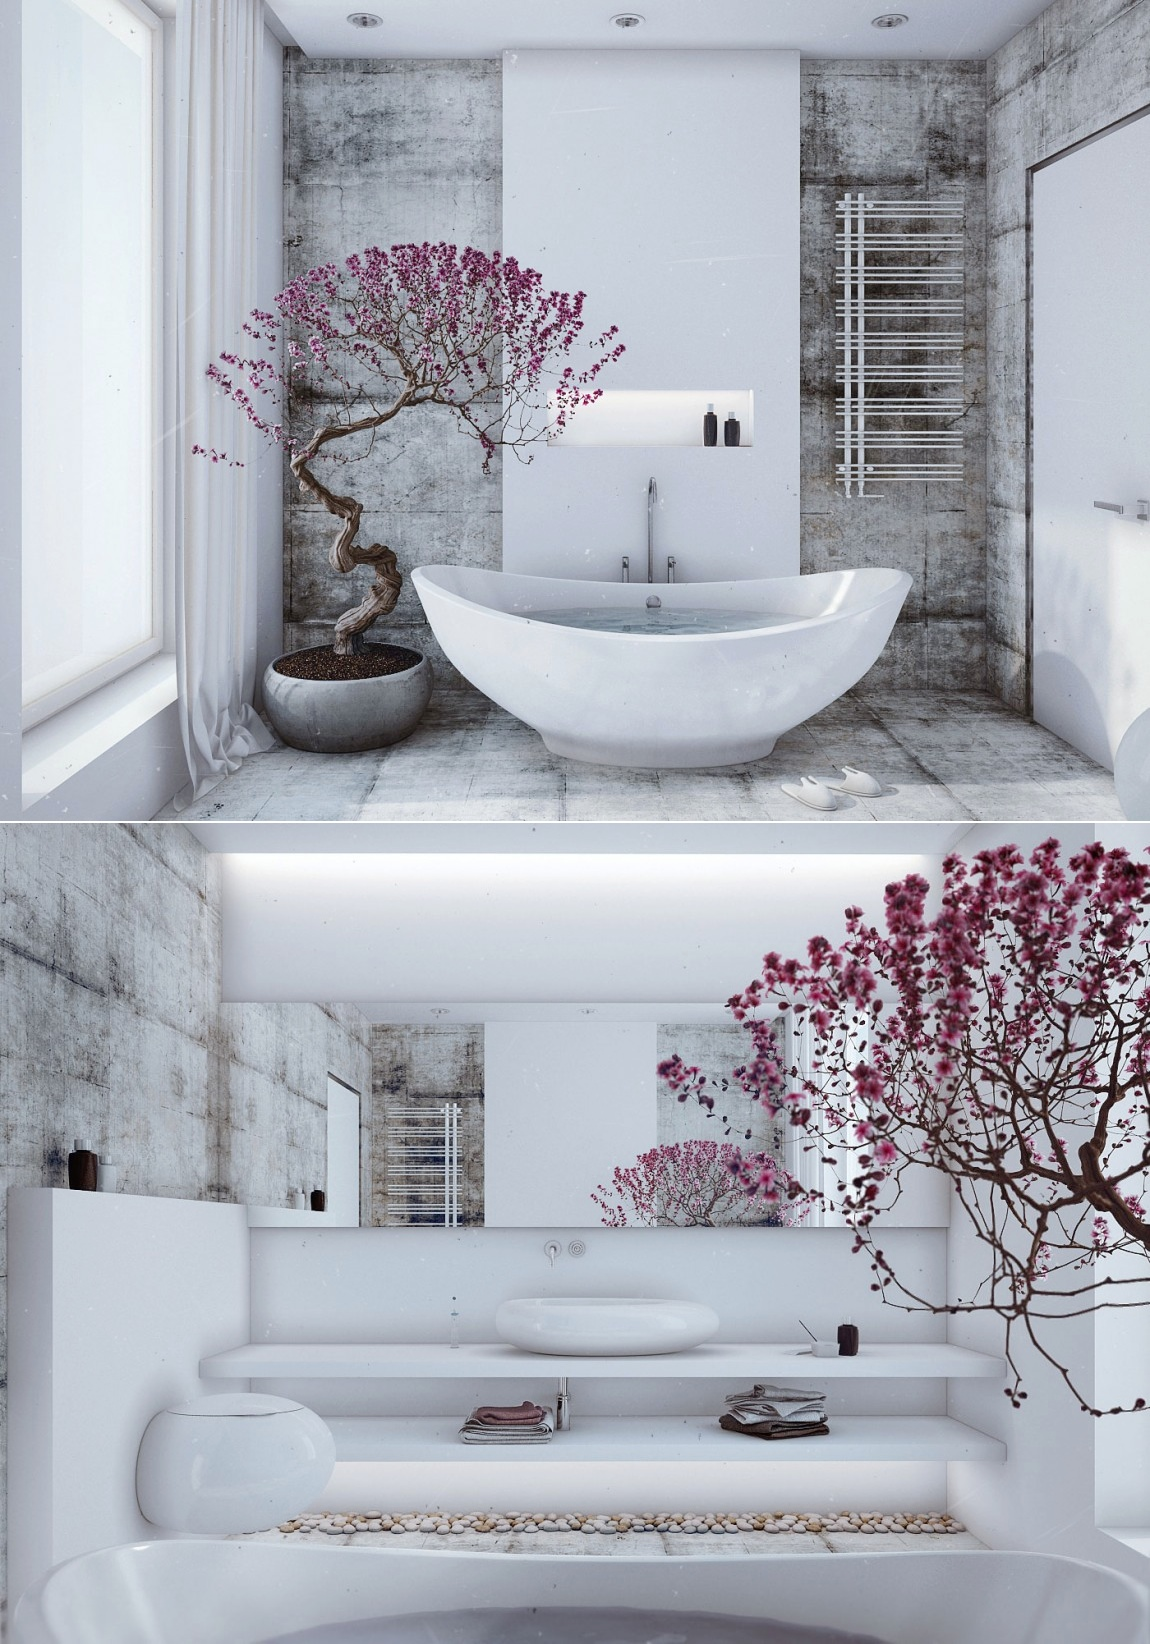 Zen bathroom design interior design ideas for House designs zen